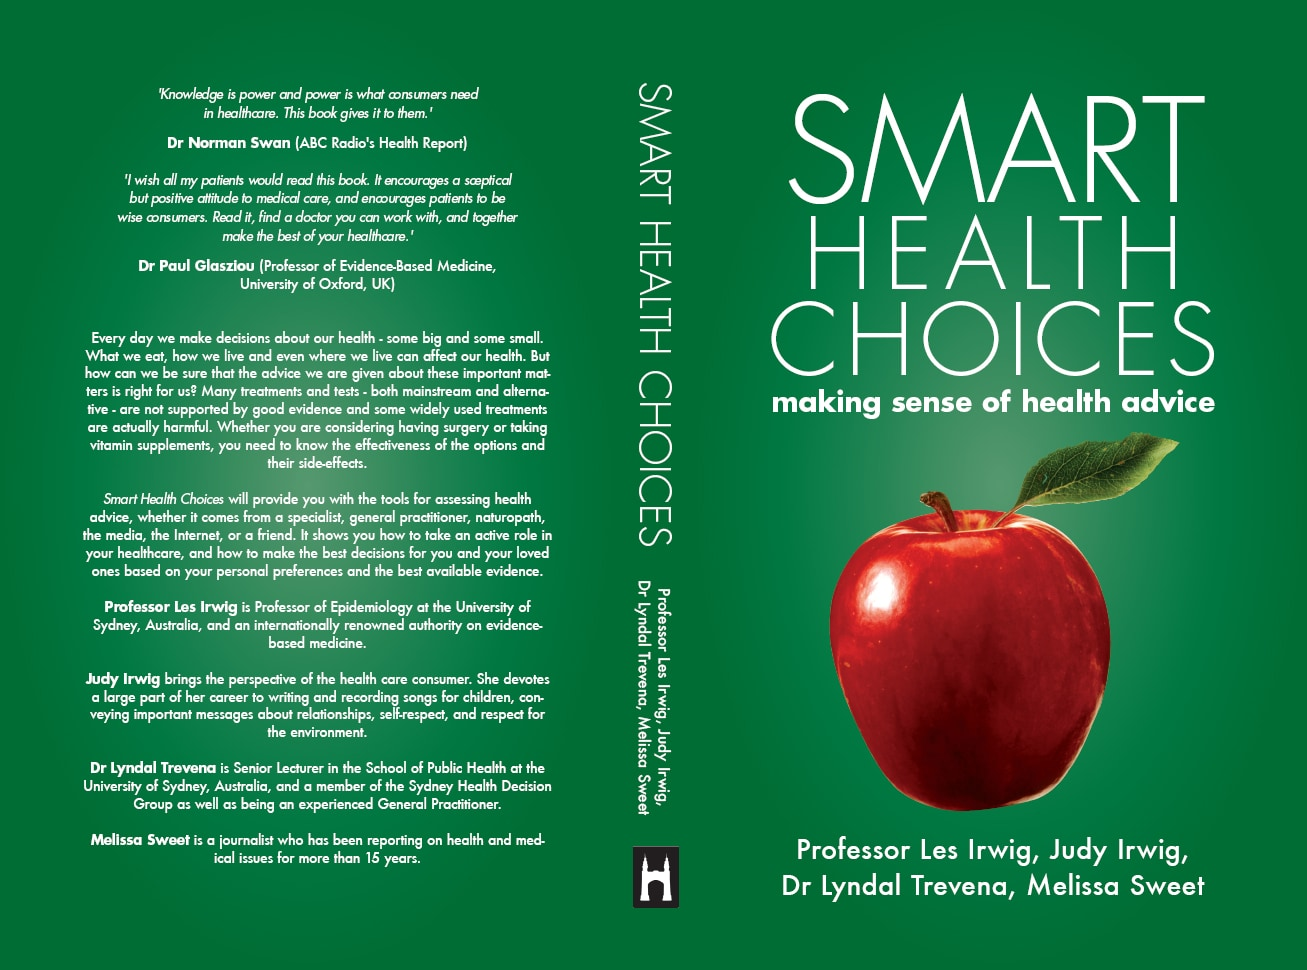 smart health choices - shdg - the university of sydney